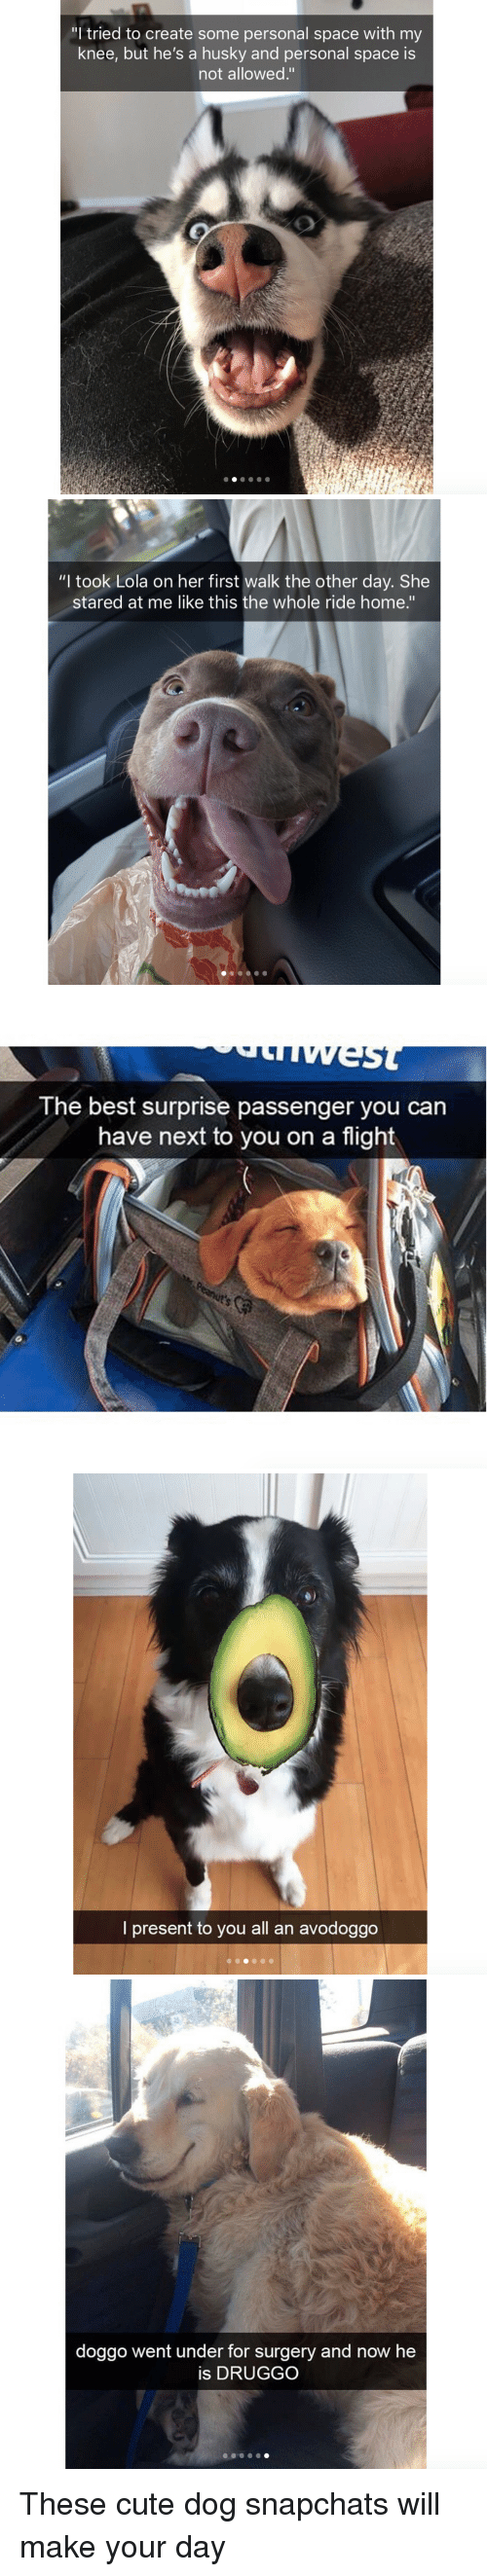 """lola: """"I tried to create some personal space with my  knee, but he's a husky and personal space is  not allowed.""""   """"l took Lola on her first walk the other day. She  stared at me like this the whole ride home.""""   The best surprise passenger you can  have next to you on a flight   o)  l present to you all an avodoggo   doggo went under for surgery and now he  is DRUGGO <p>These cute dog snapchats will make your day<br/></p>"""